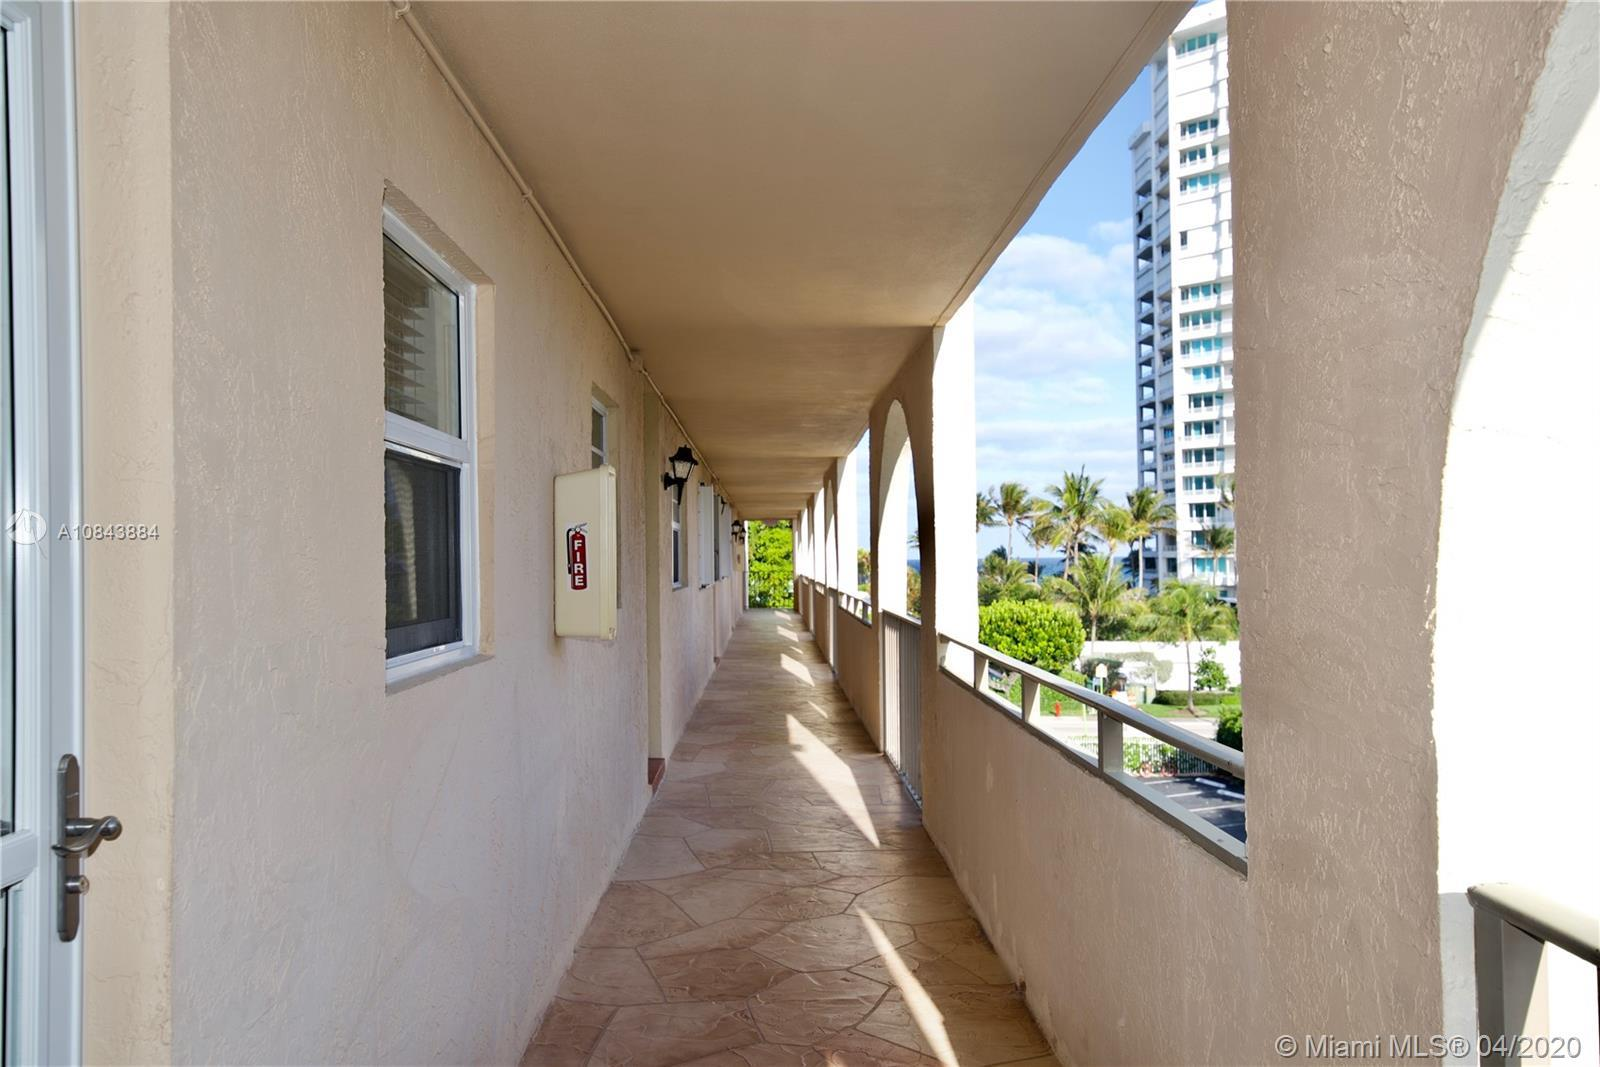 FULLY REMODELED CORNER UNIT in 2019. BRIGHT 1/1.5 condo with a walk-in closet. Stainless Steel Appli